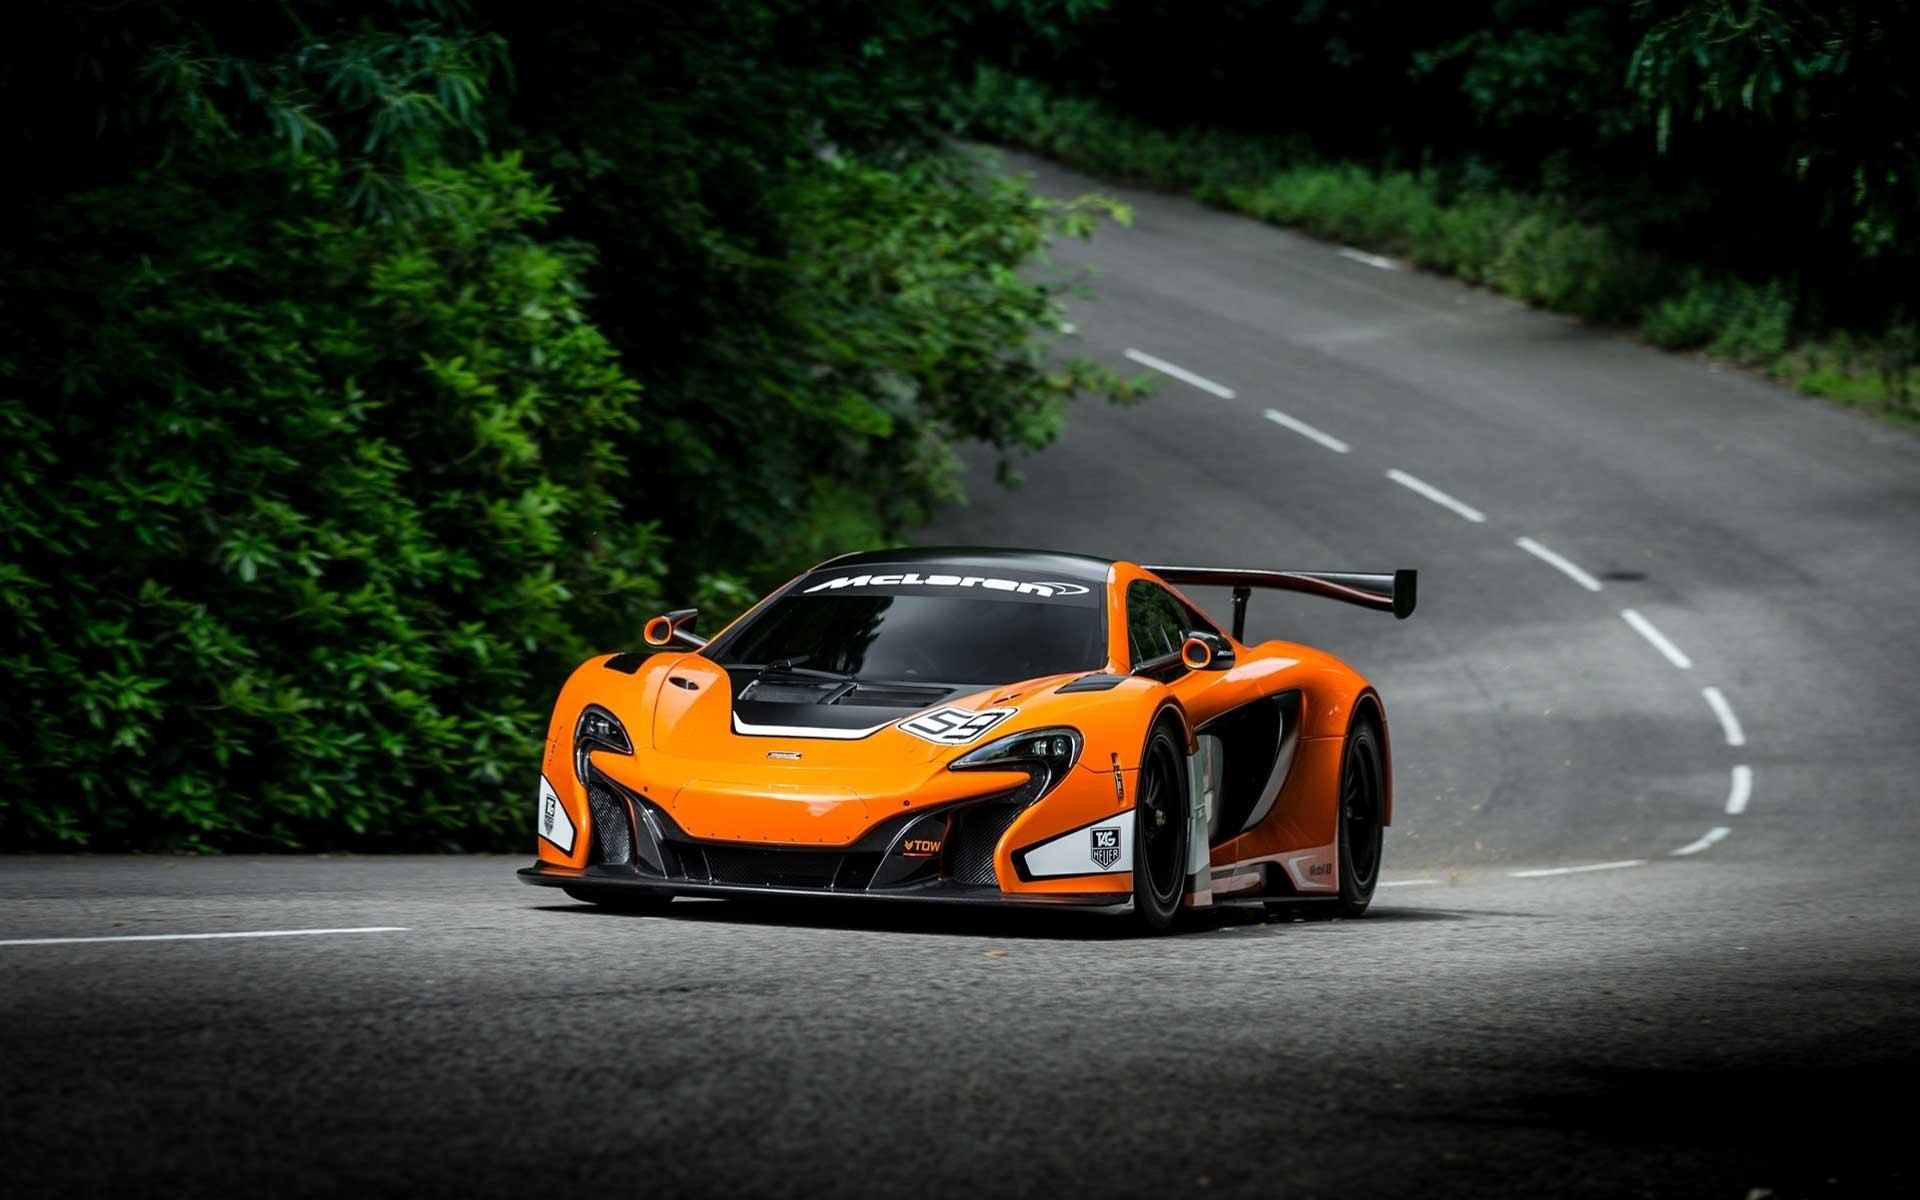 Exotic Sports Cars >> Awesome Car Backgrounds (65+ images)